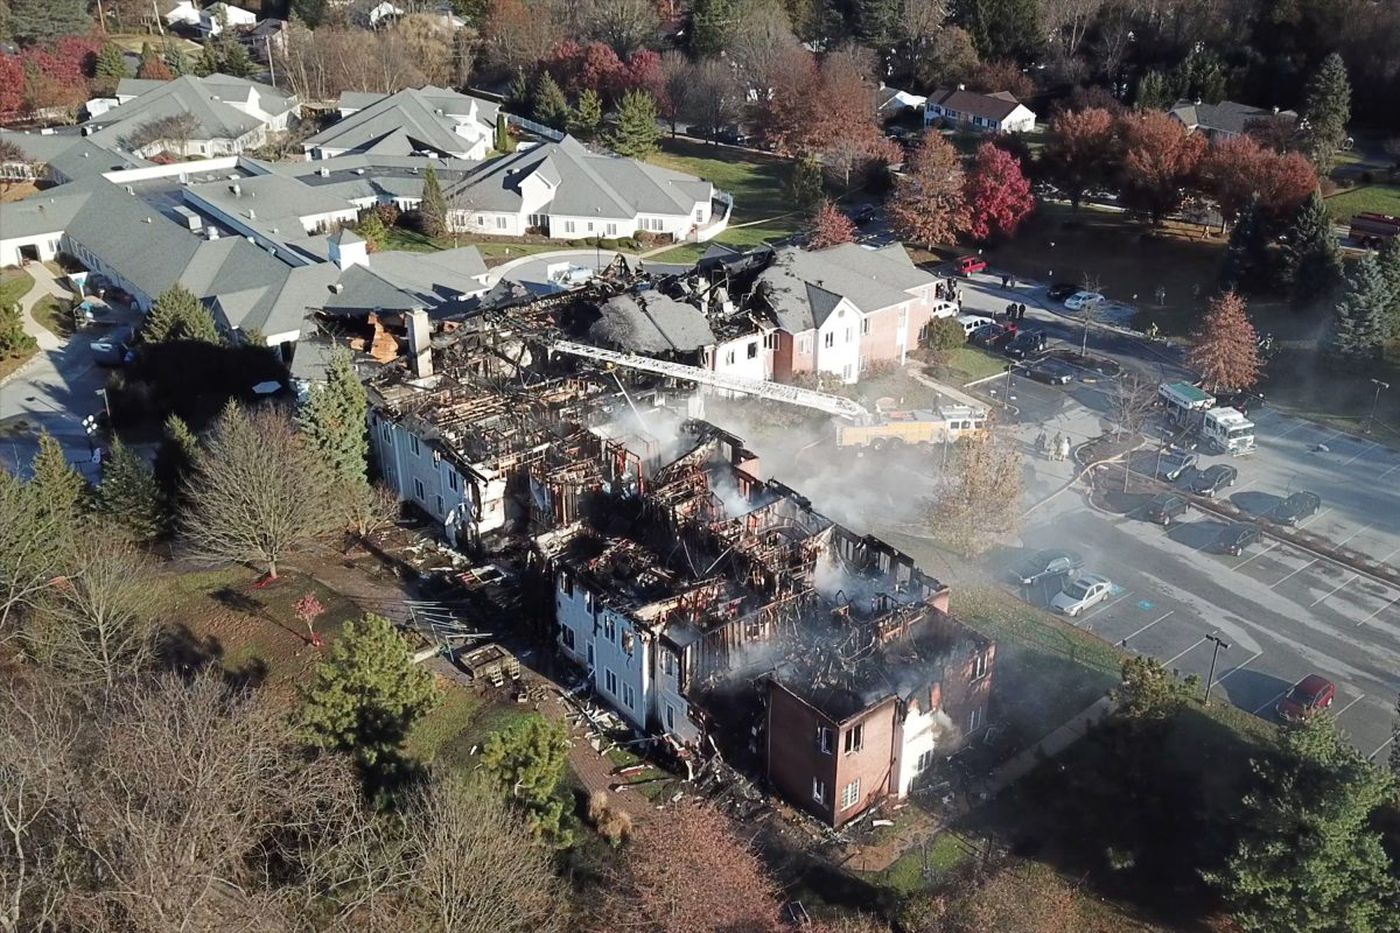 Barclay Friends nursing home fire: What we know and don't know